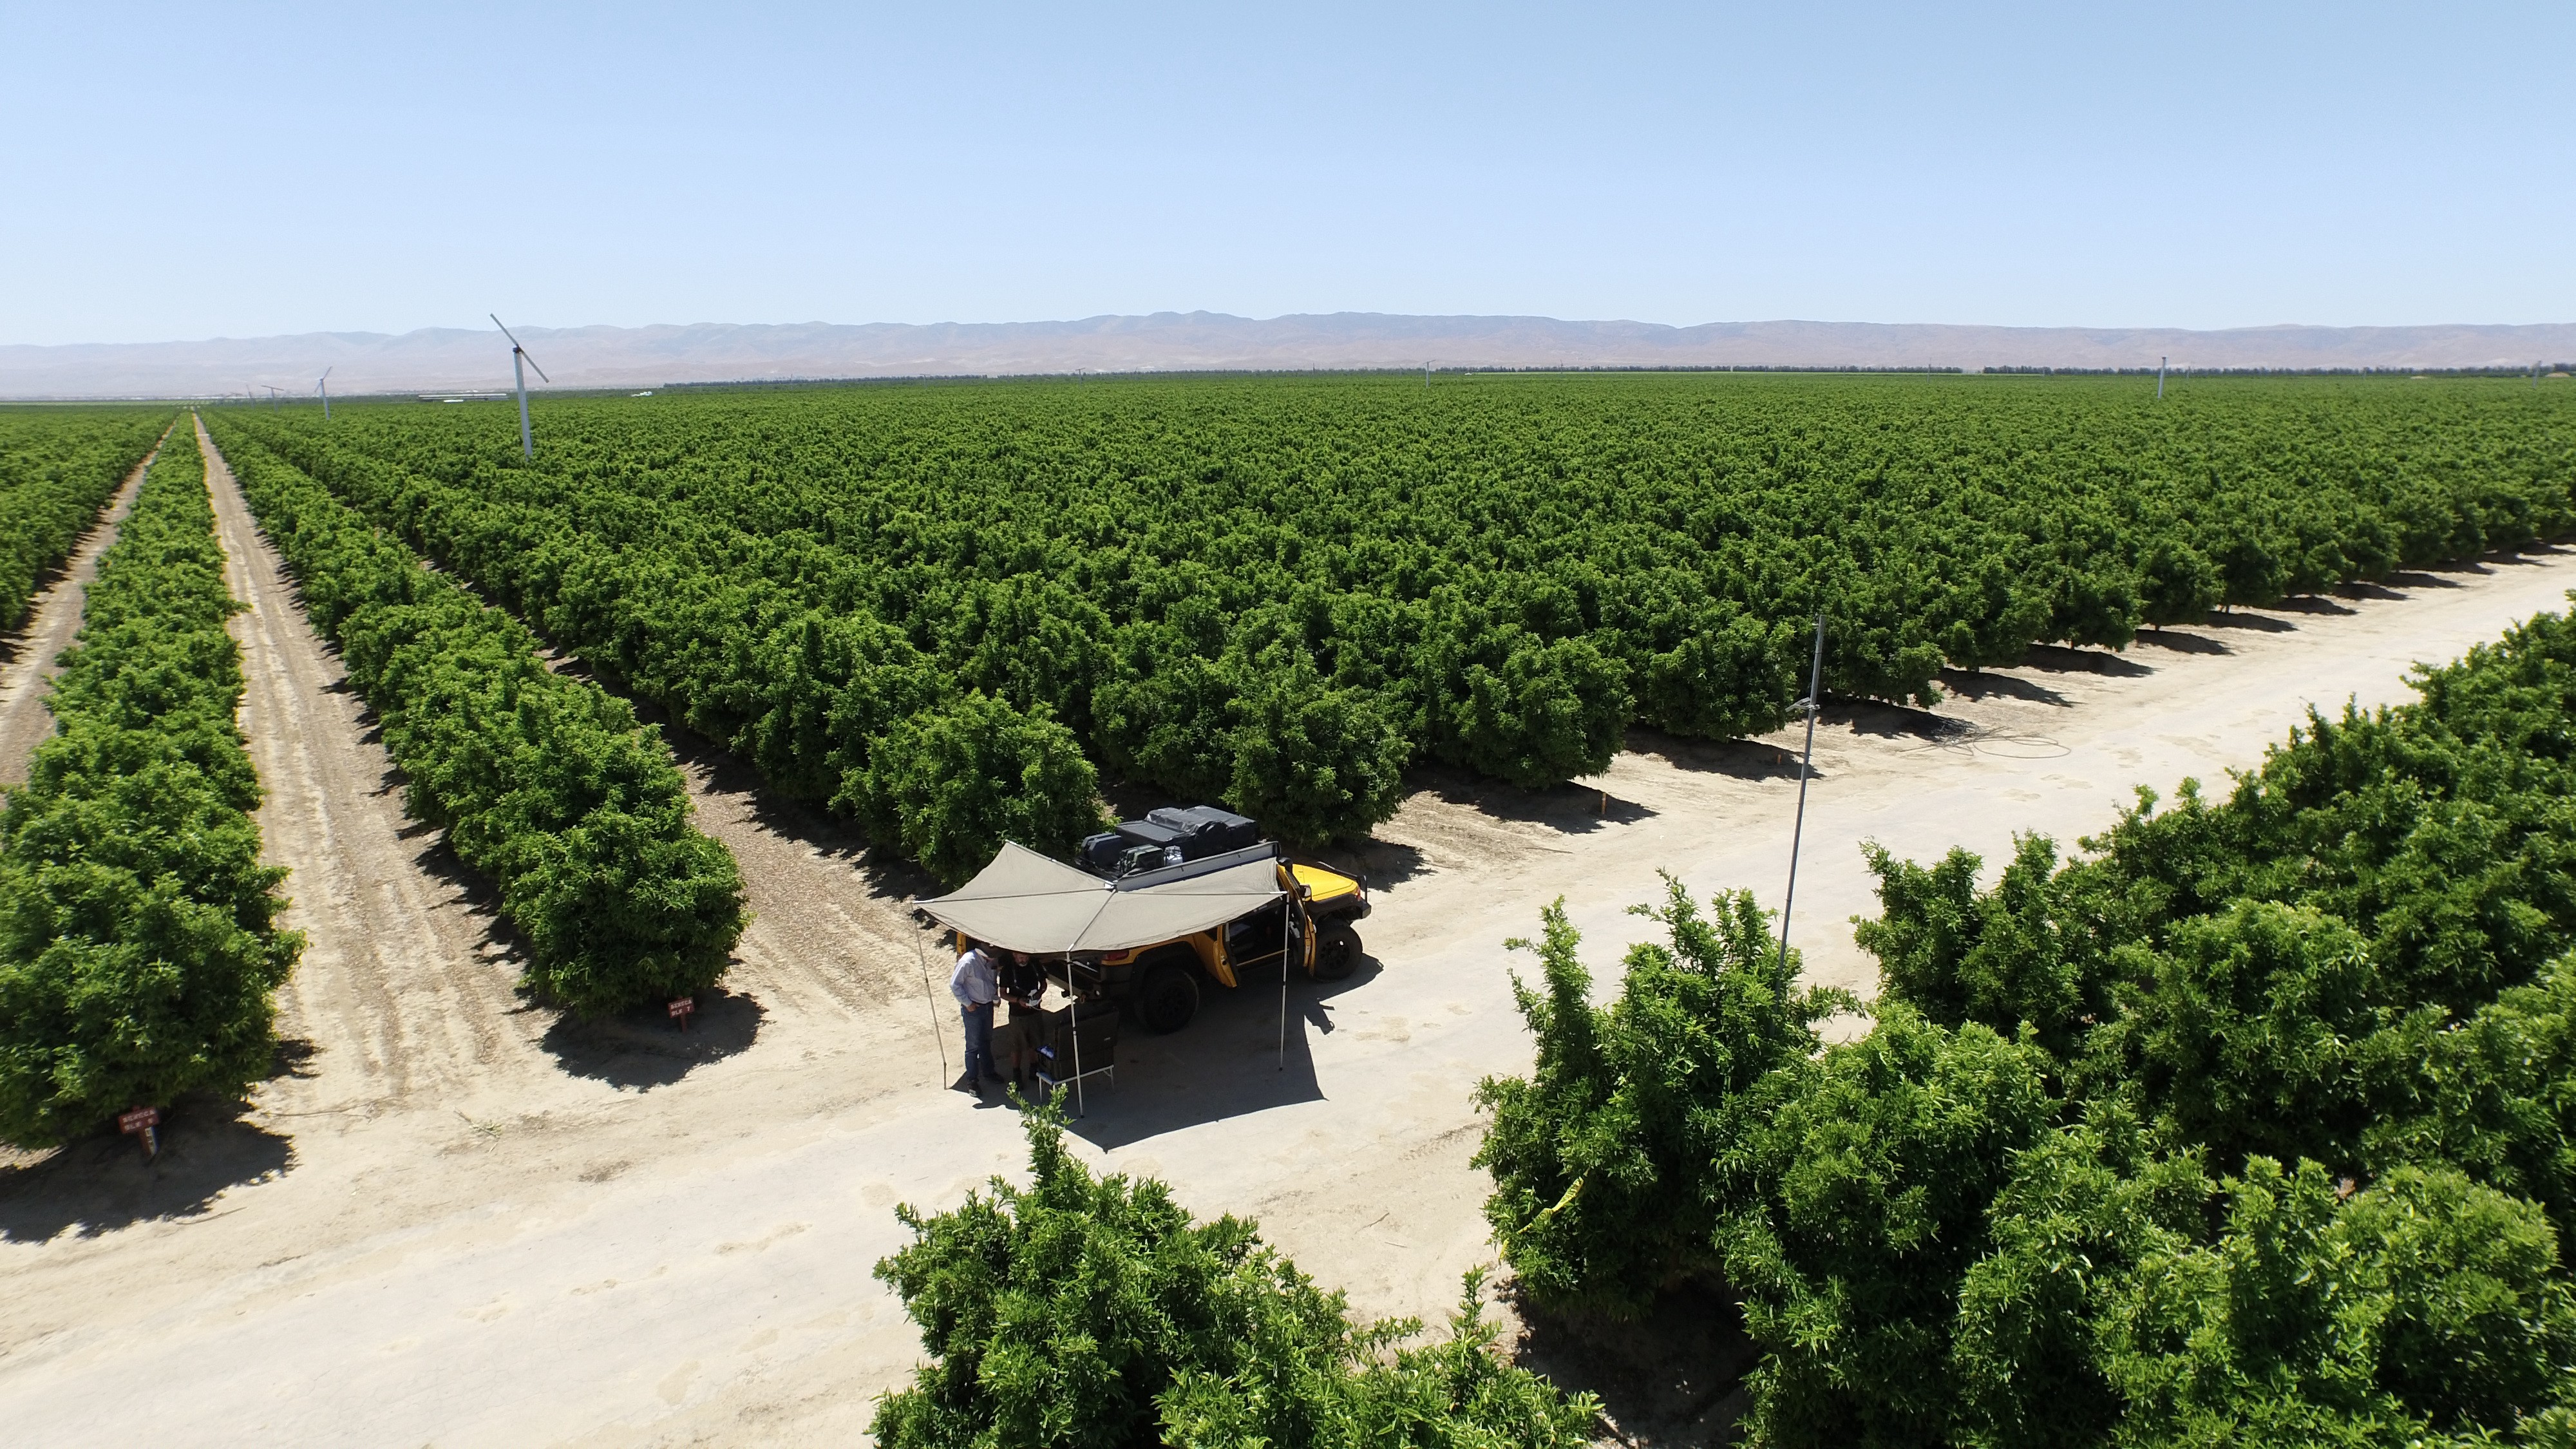 Drone Maps Diagnose Crop Problems, Demonstrate Test Results